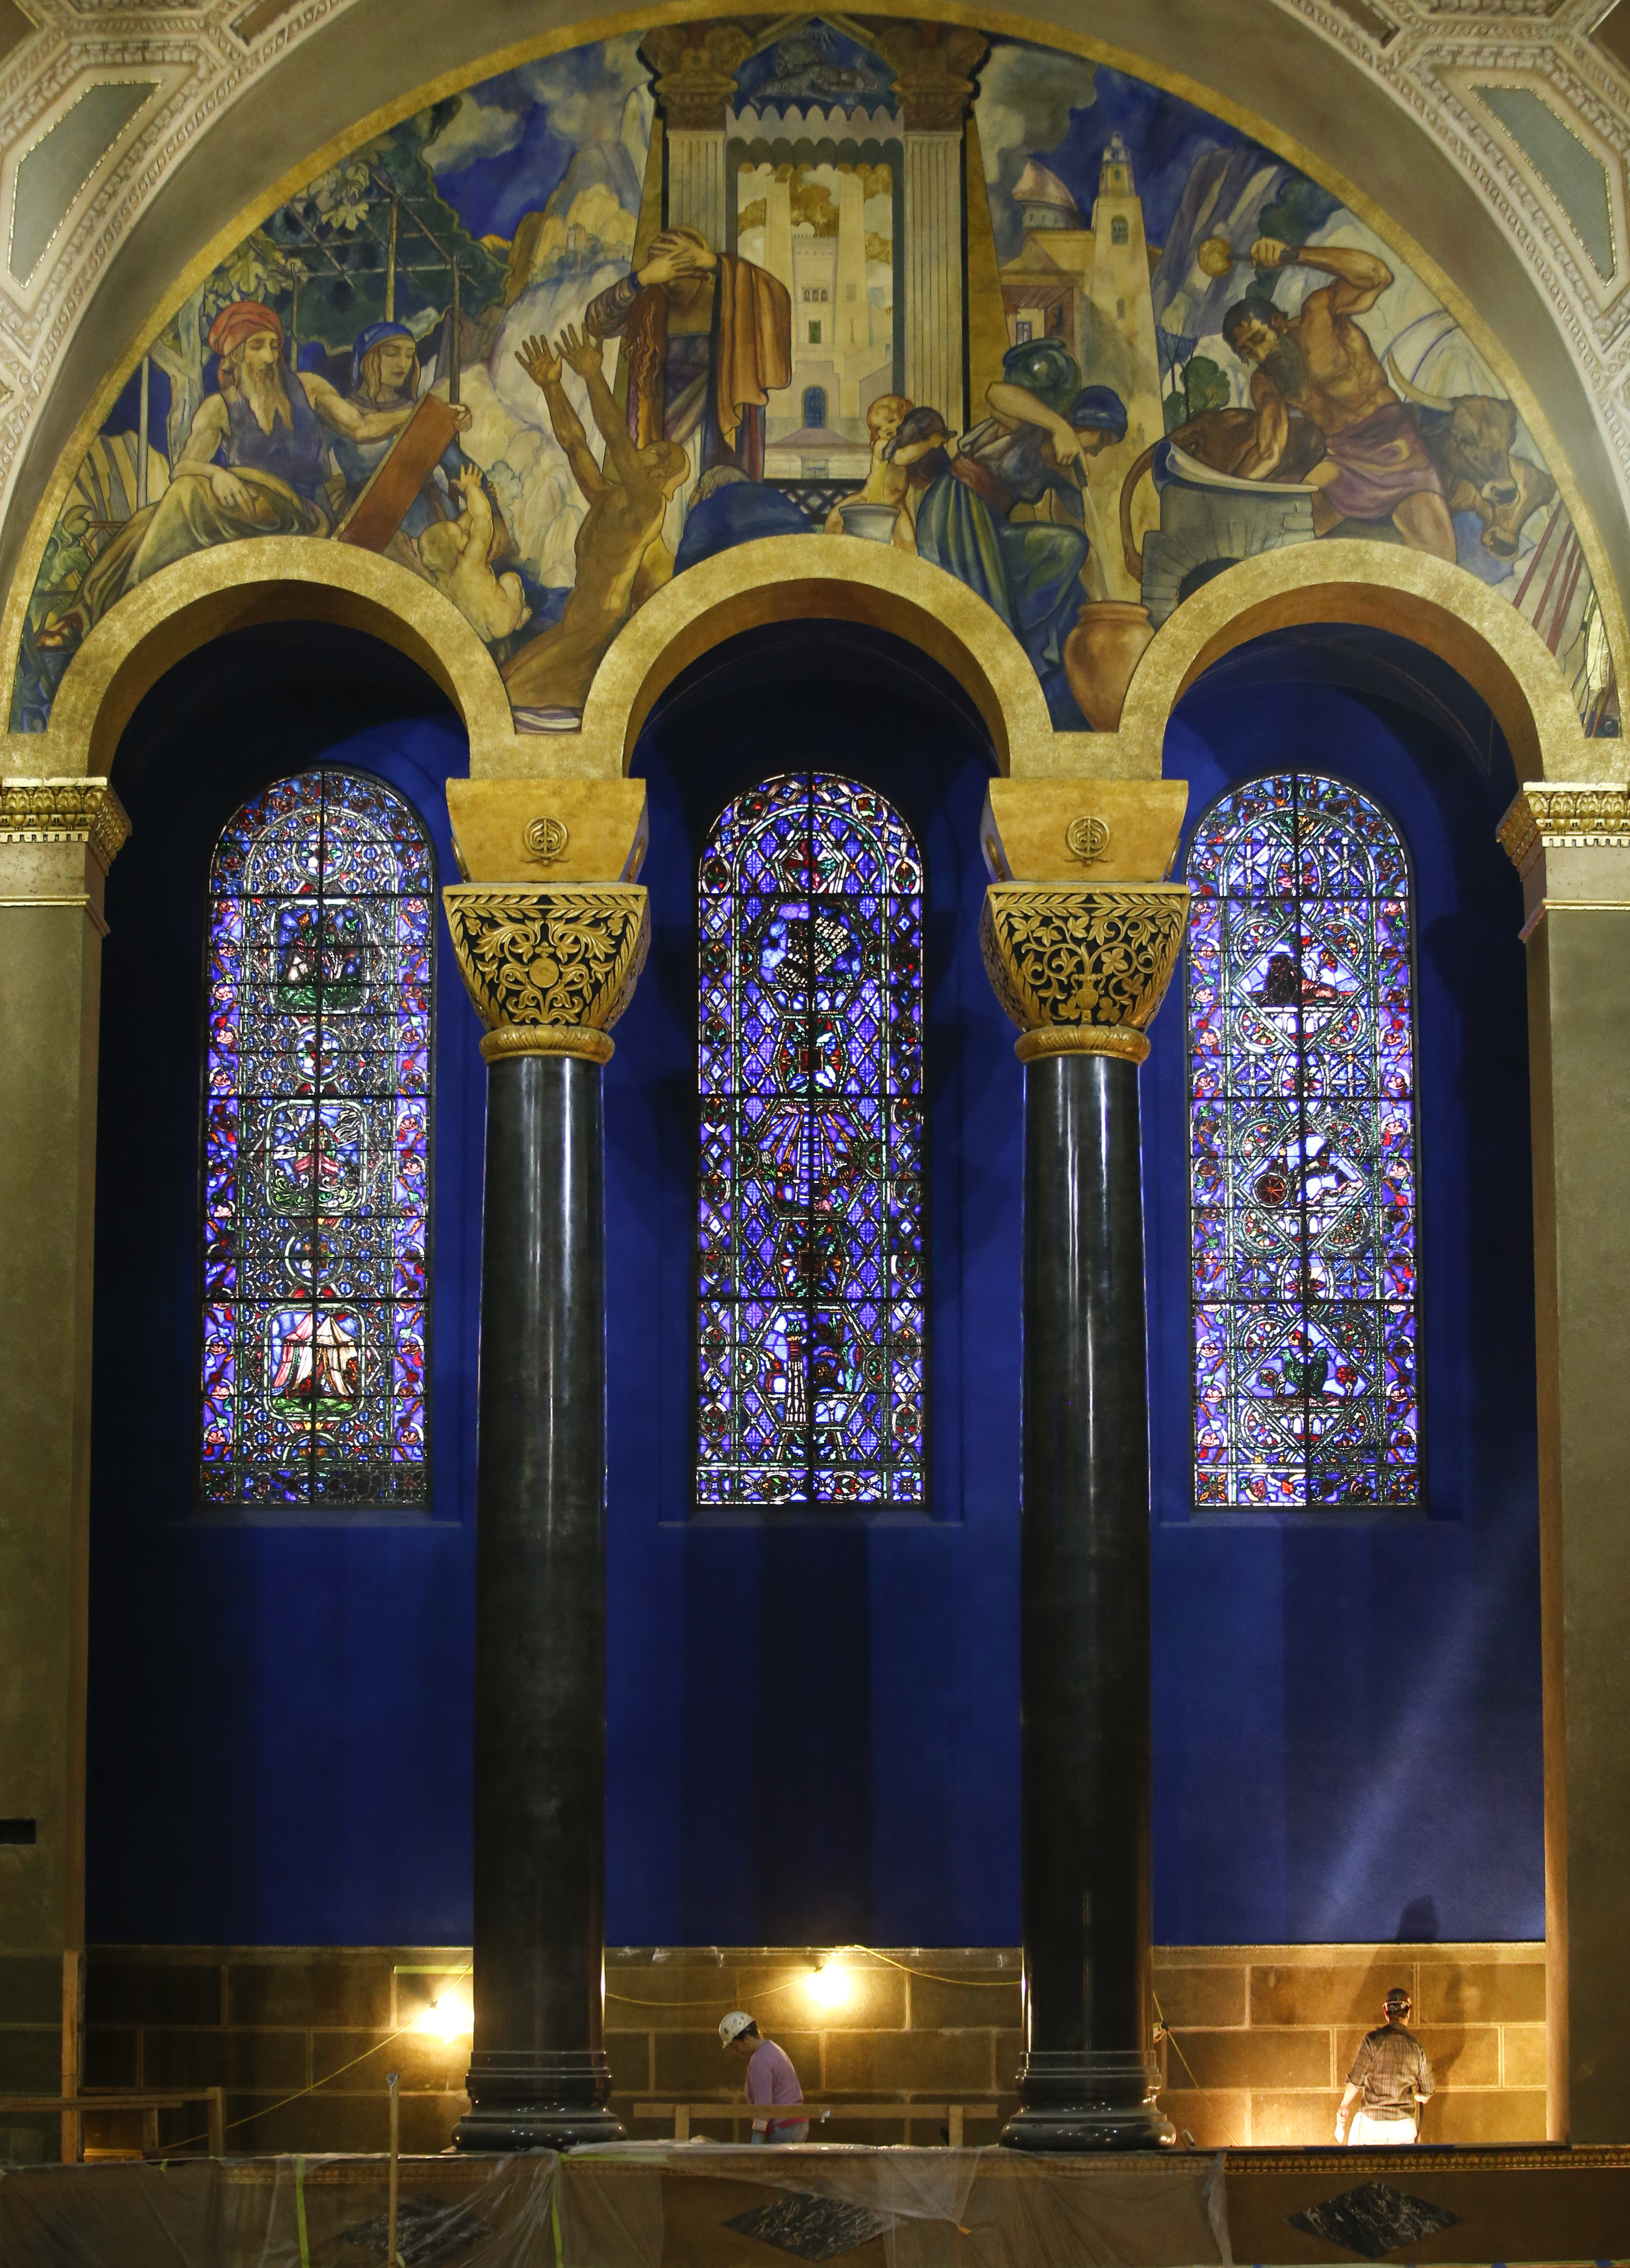 The Warner Bros. studio provided the colorful murals that recount the history of Judaism as they stretch across of the walls inside the Wilshire Boulevard Temple's huge, gold-domed sanctuary.